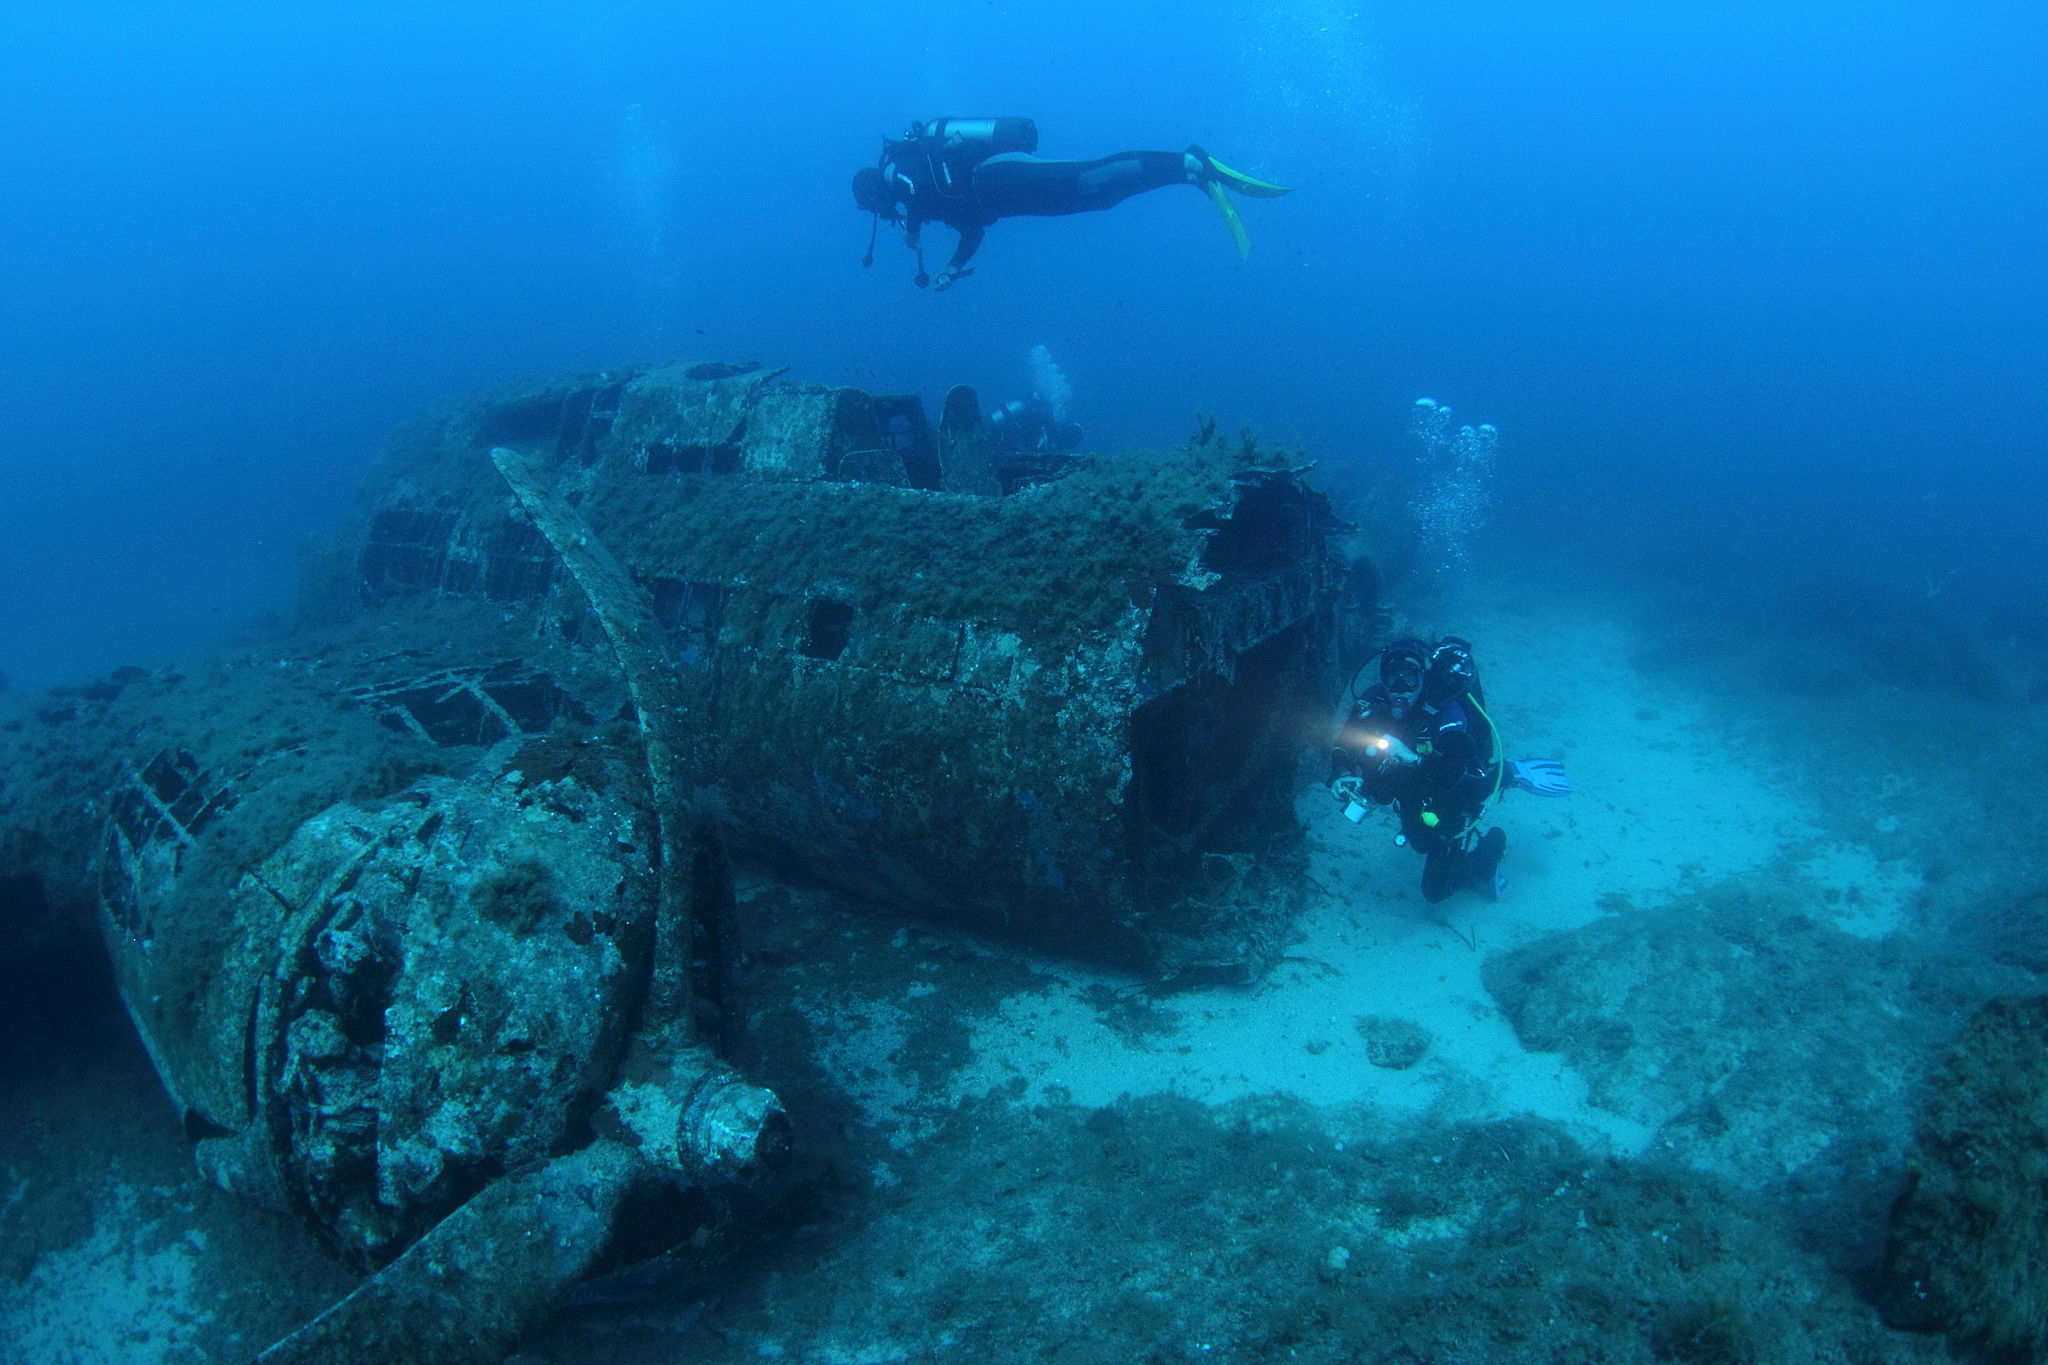 Scuba_divers_on_the_wreck_of_a_B-17_bomber